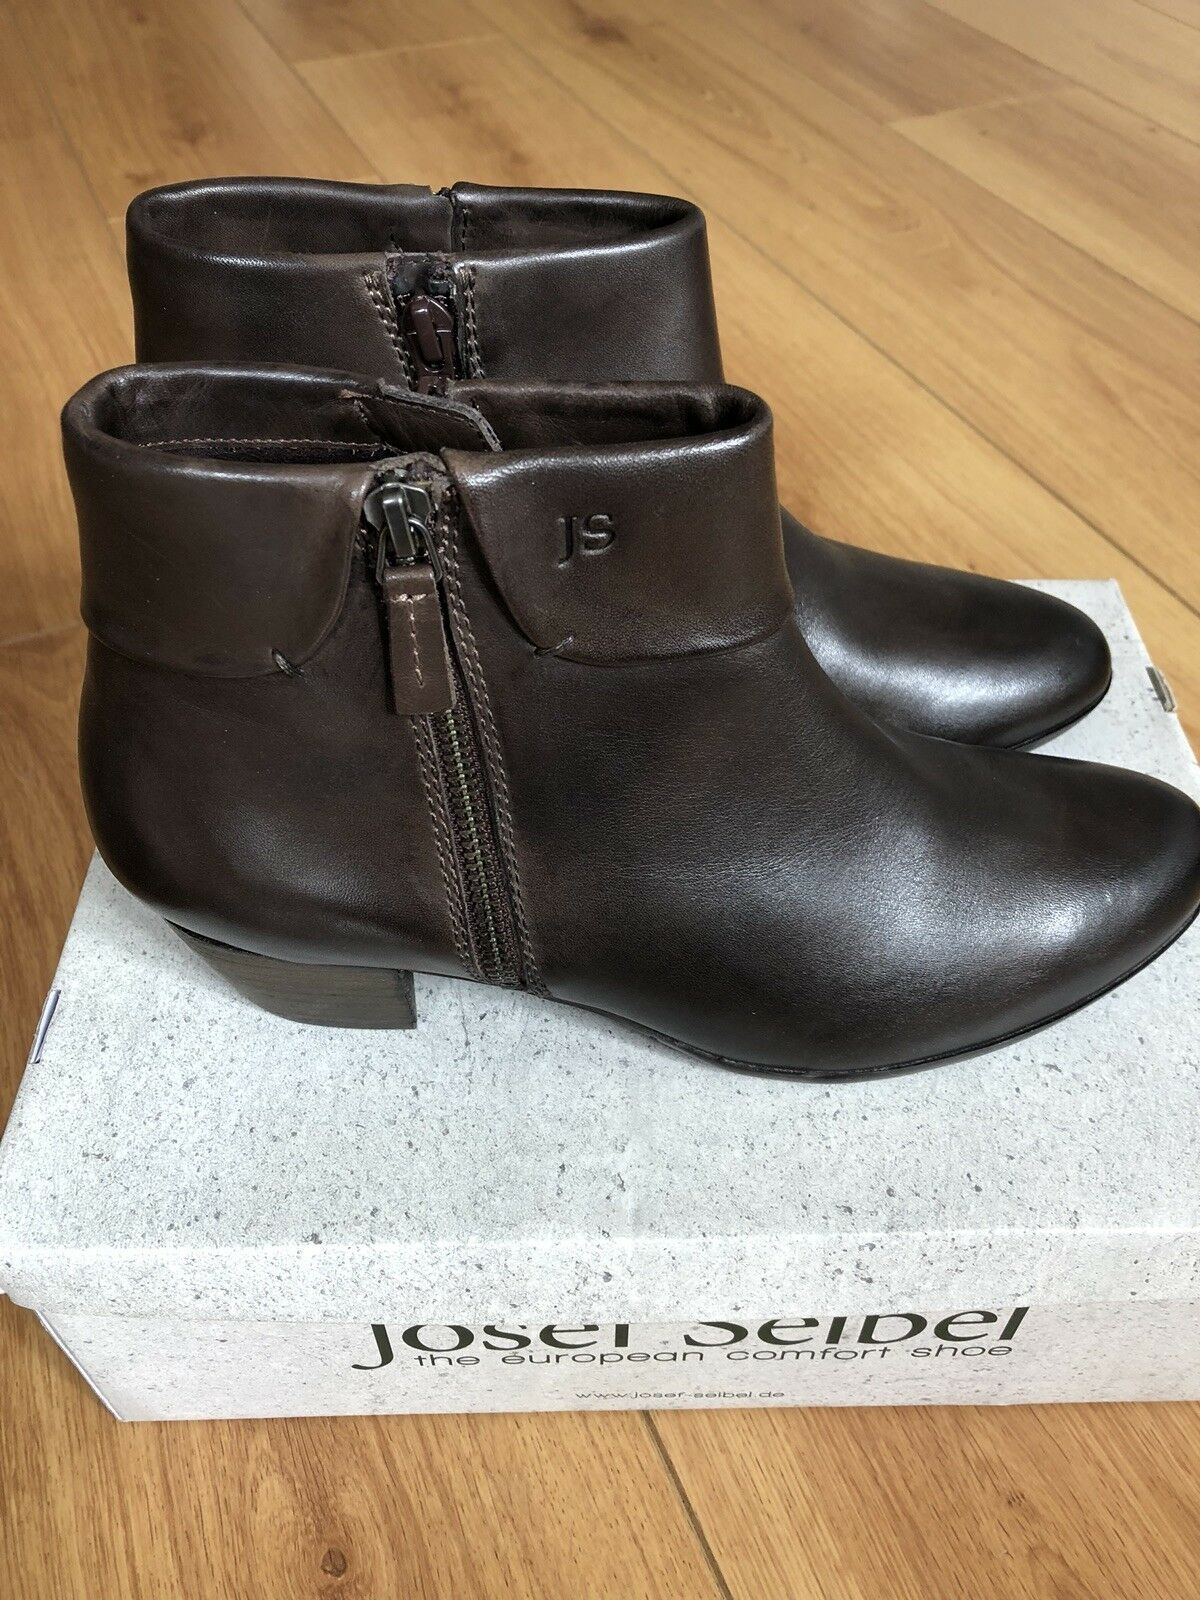 BRAND NEW JOSEF SEIBEL SUE SUE SEIBEL 05 ladies zip ankle boots in chocolate brown /38 1b607e